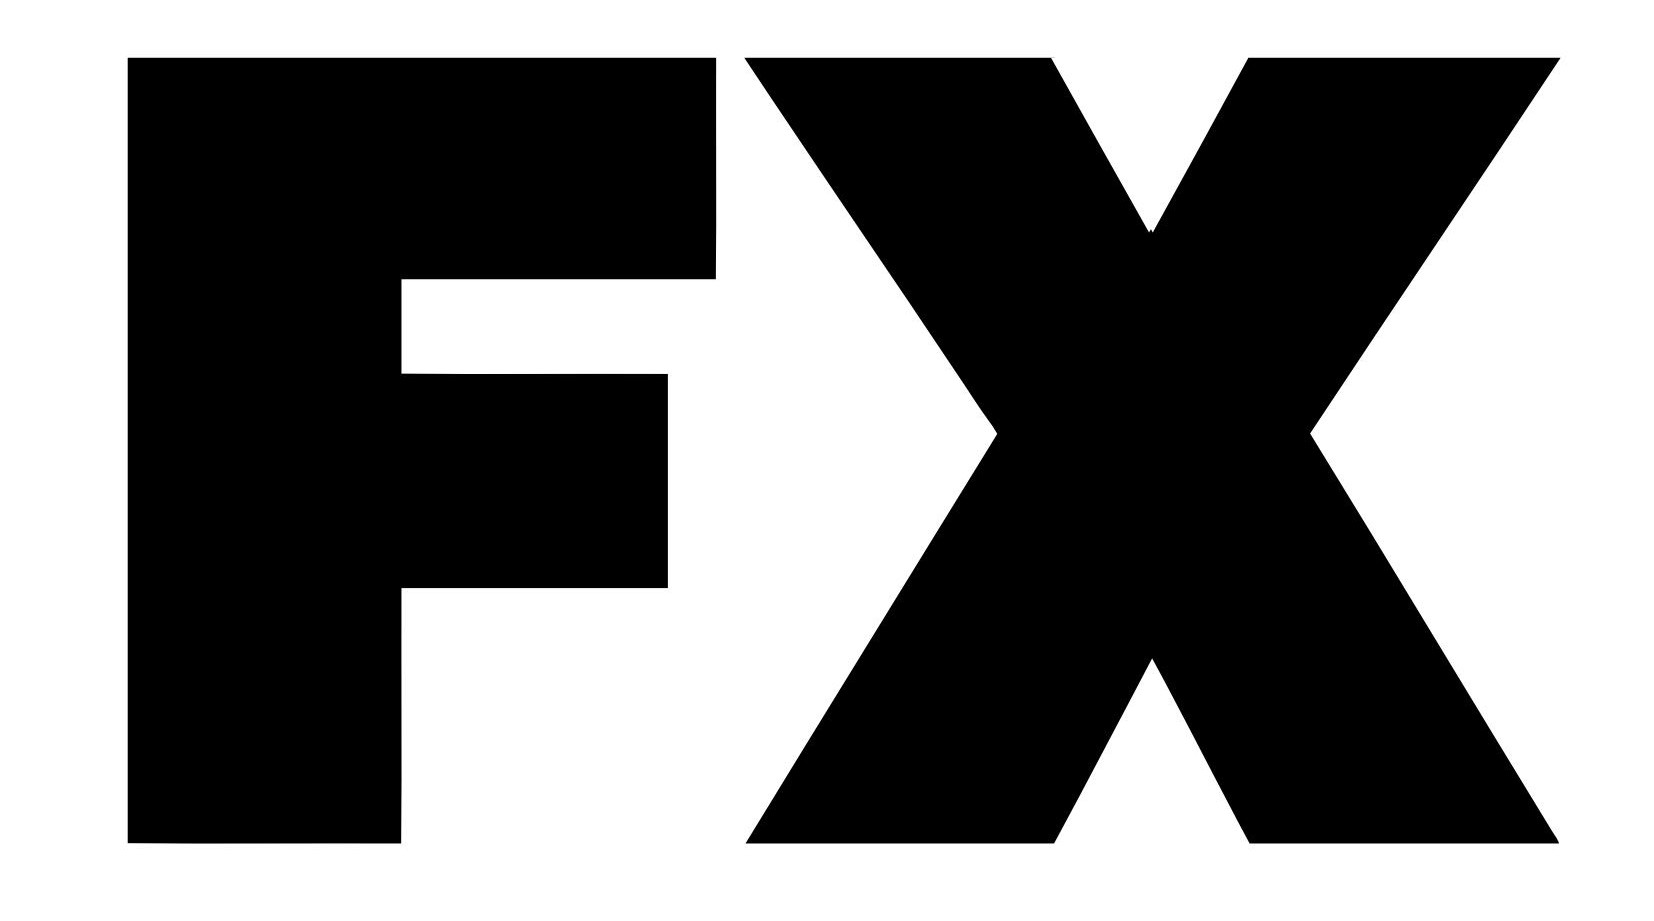 The fx